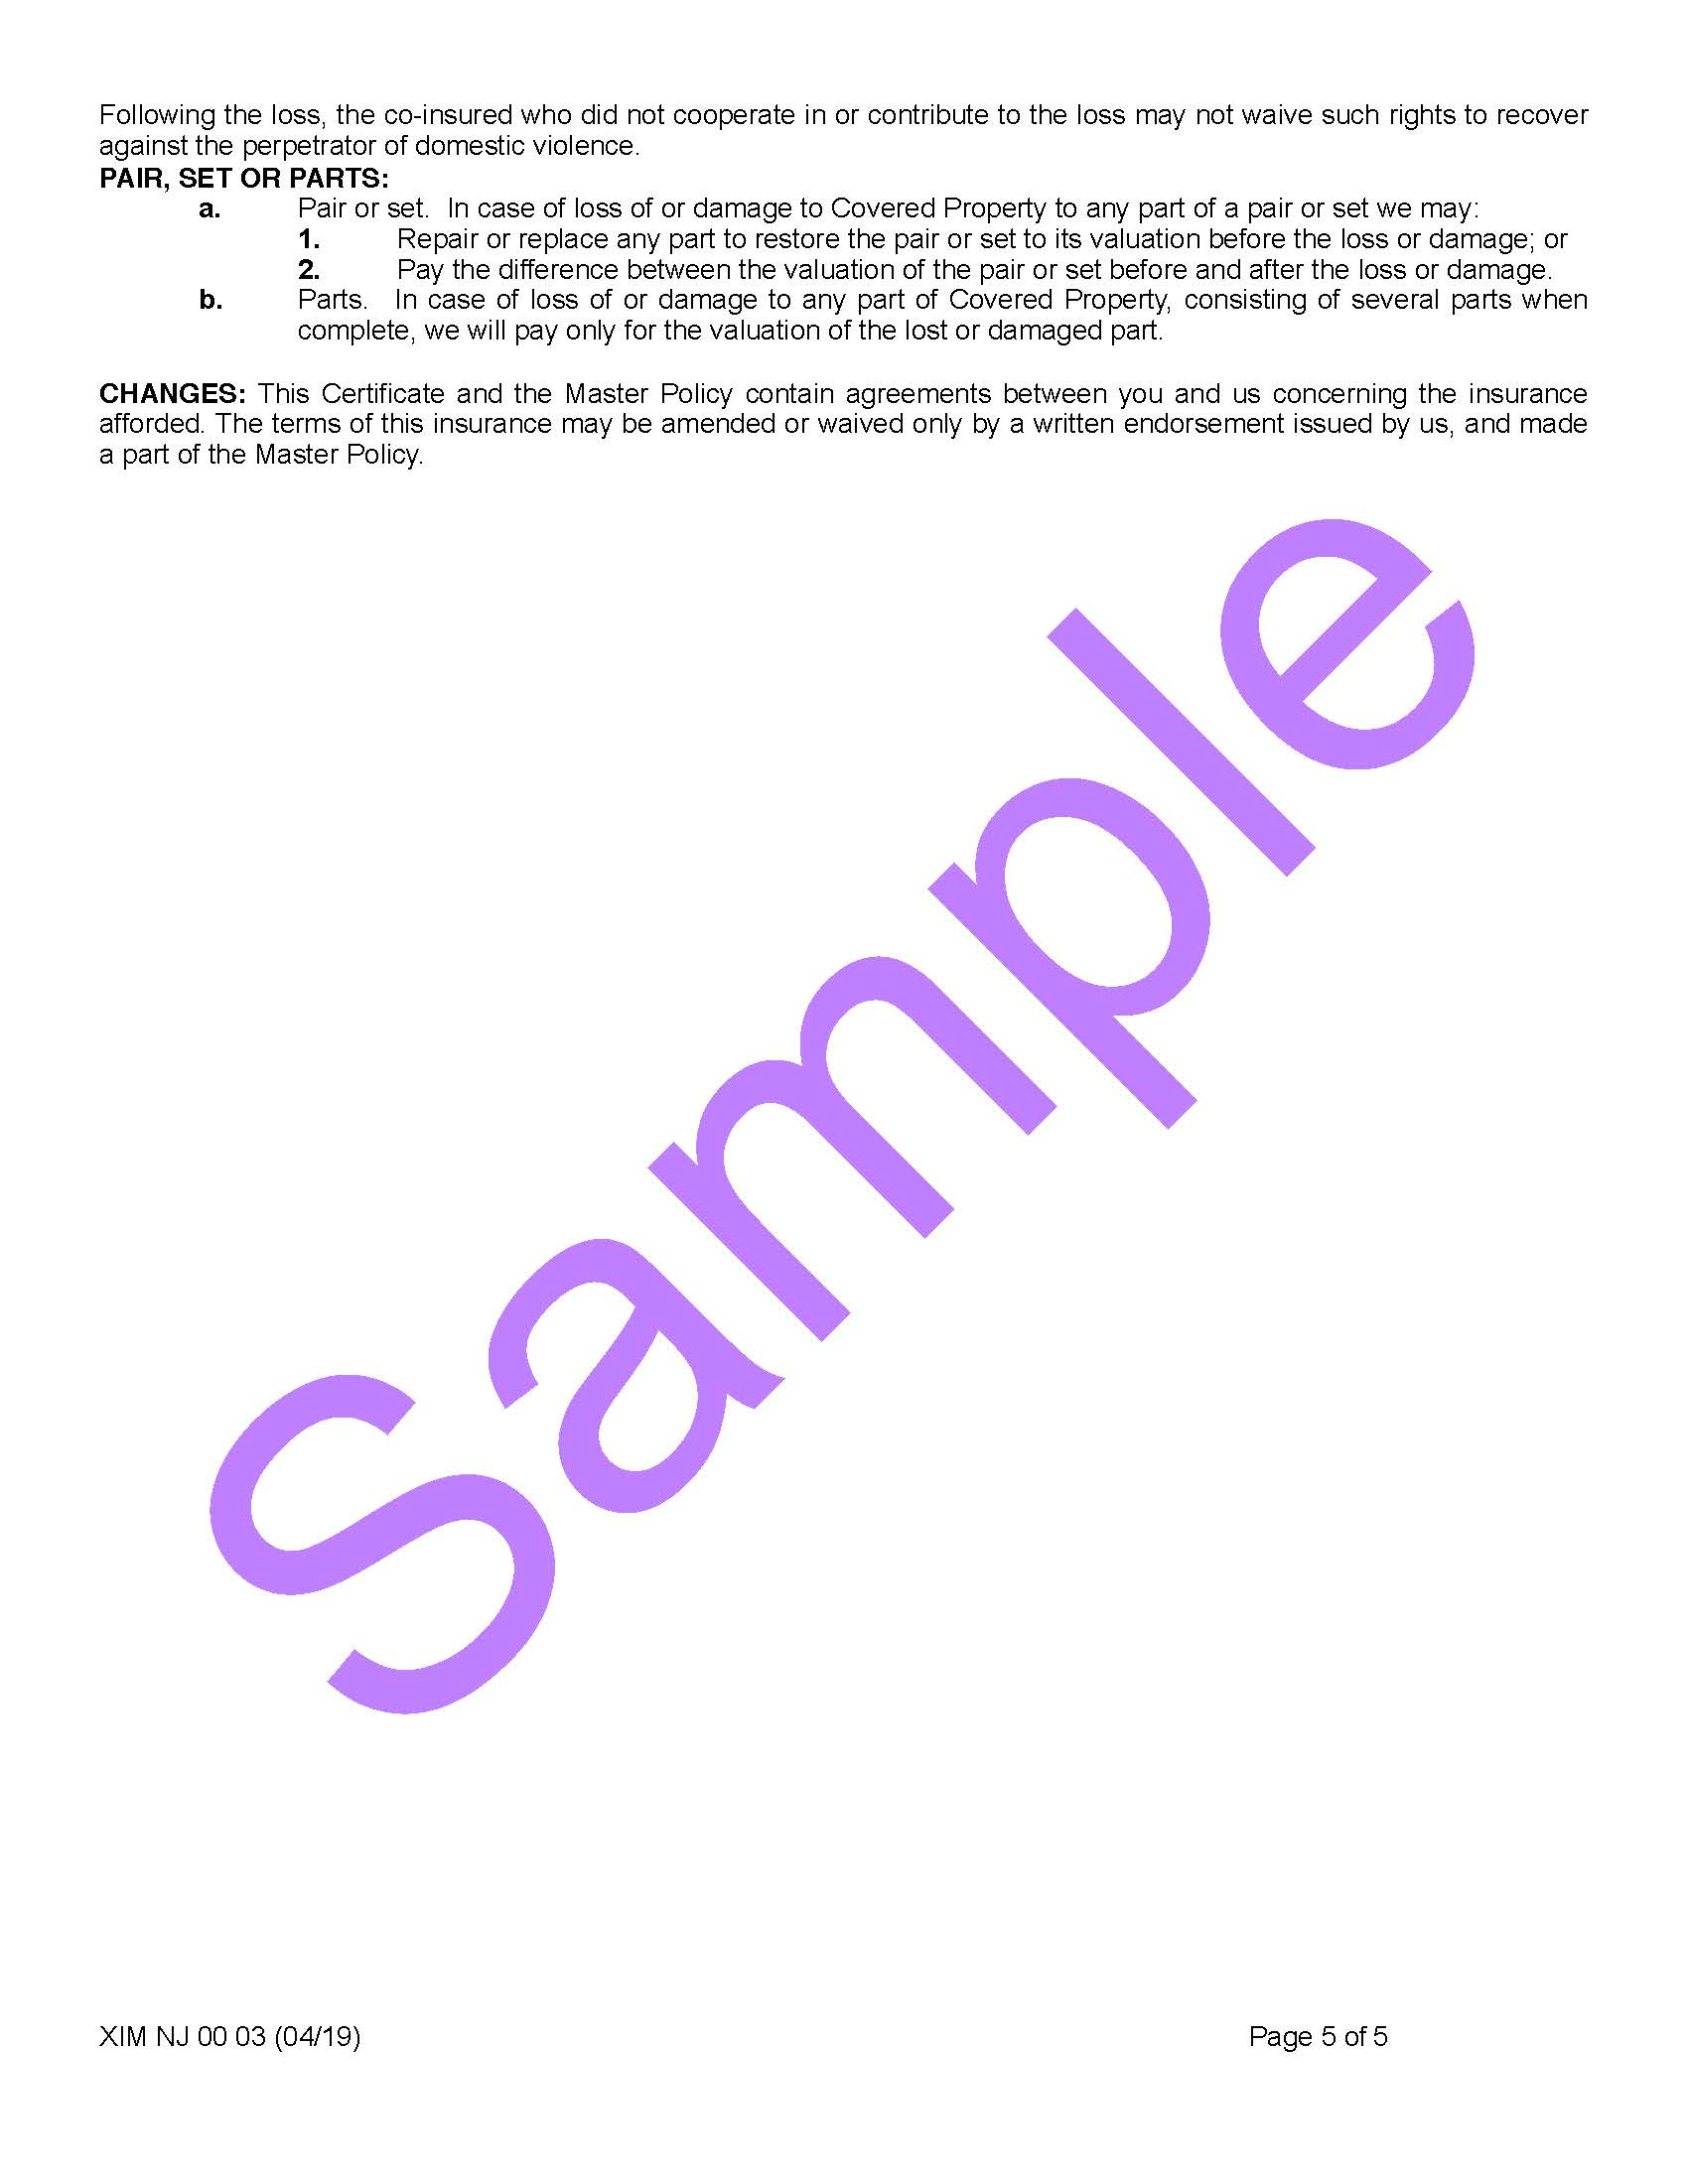 XIM NJ 00 03 04 19  New Jersey Certificate of InsuranceSample_Page_5.jpg